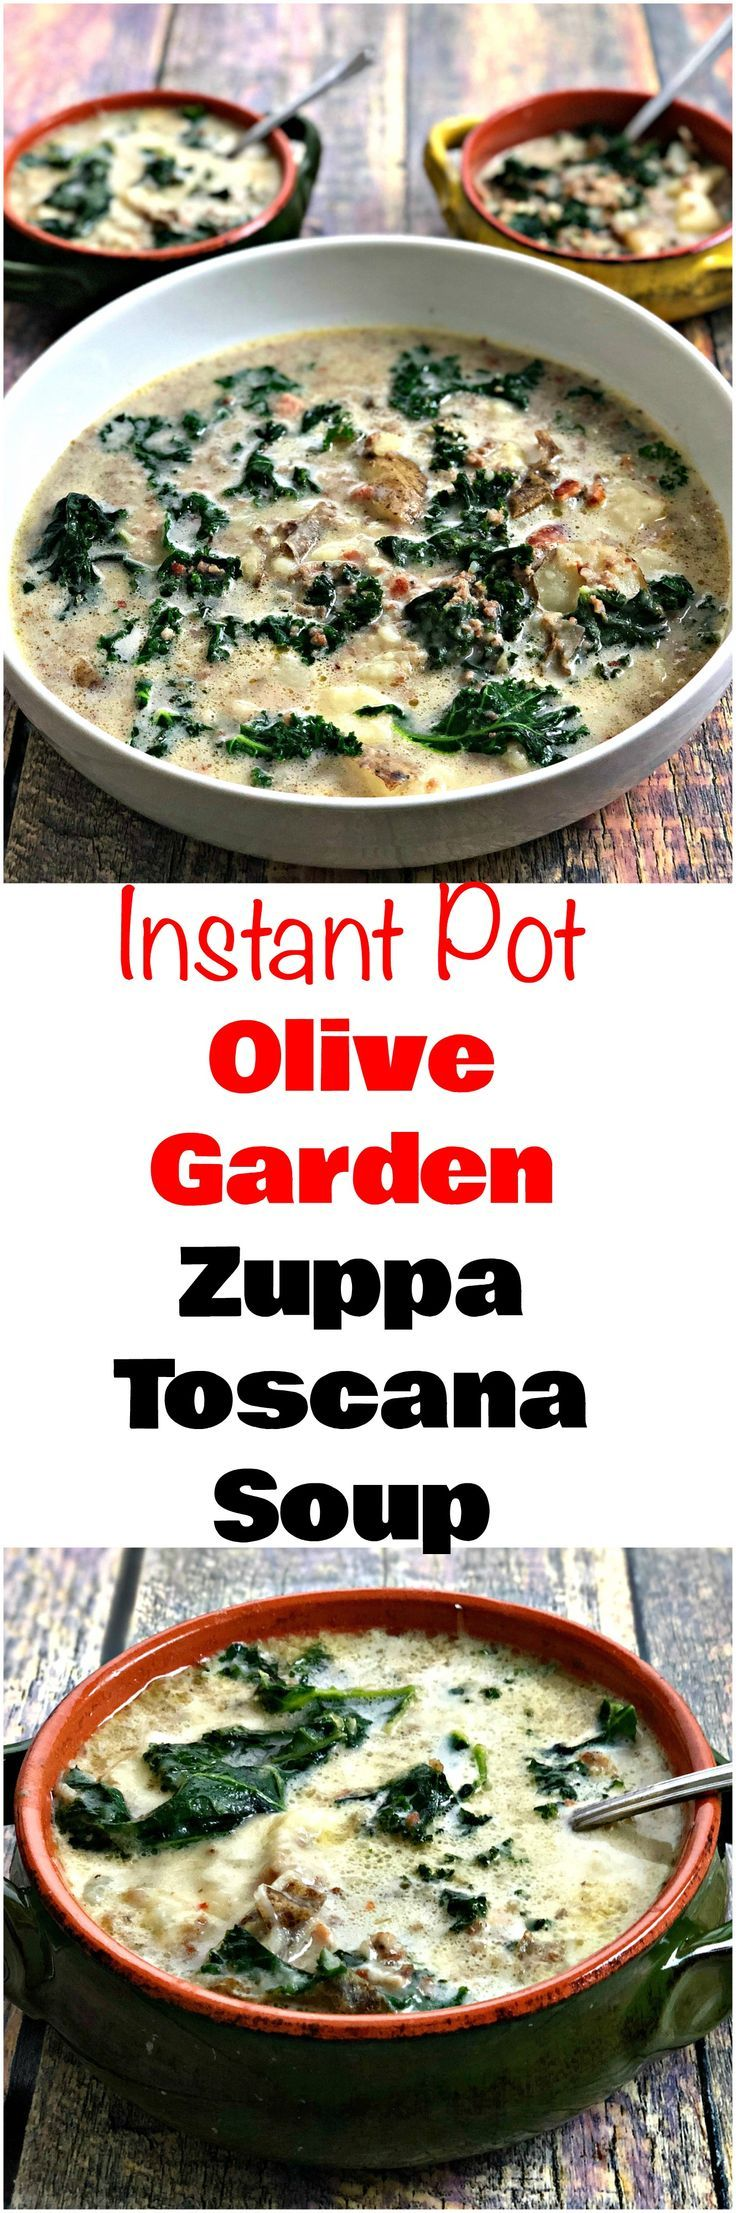 Instant Pot or Slow-Cooker Olive Garden Zuppa Toscana Soup is a quick and easy copycat, pressure cooker recipe with sausage, kale, and creamy broth. This makes the perfect meal for weeknight dinners, freezer meals, and advance meal prep. #MealPrep #InstantPot #InstantPotRecipes #OliveGarden #PressureCooker #PressureCookerRecipes #Soup